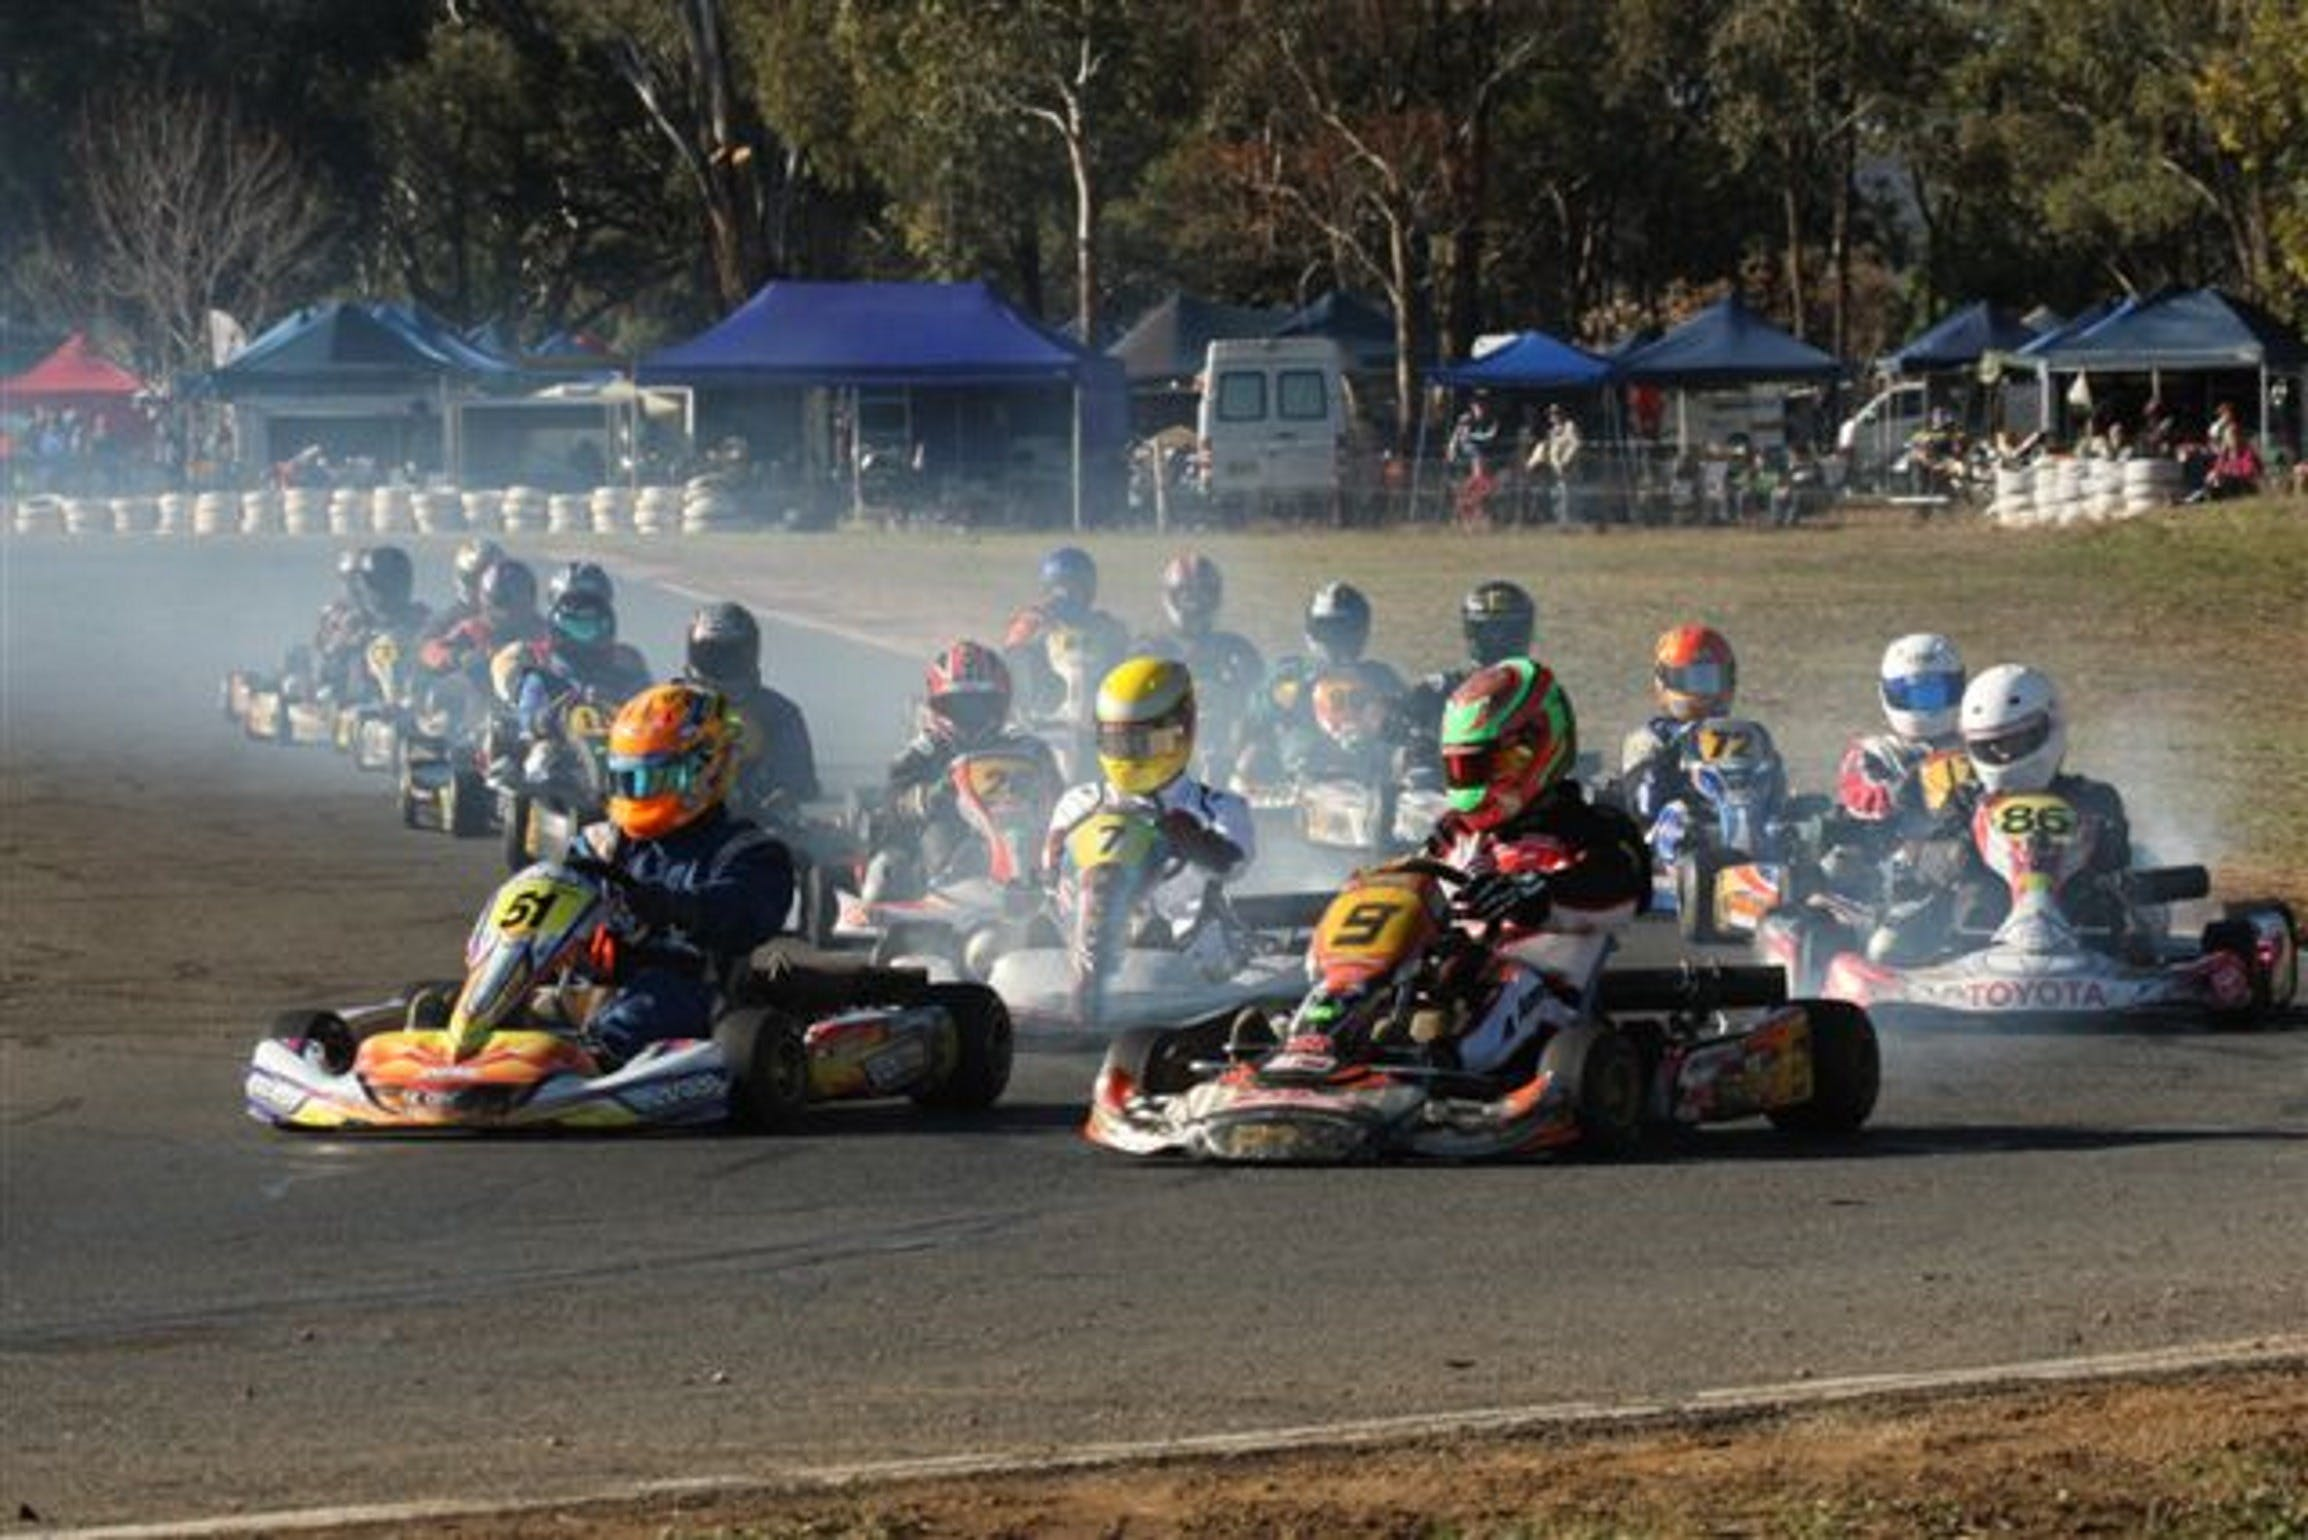 Grenfell Kart Club December Race Day - Accommodation in Bendigo